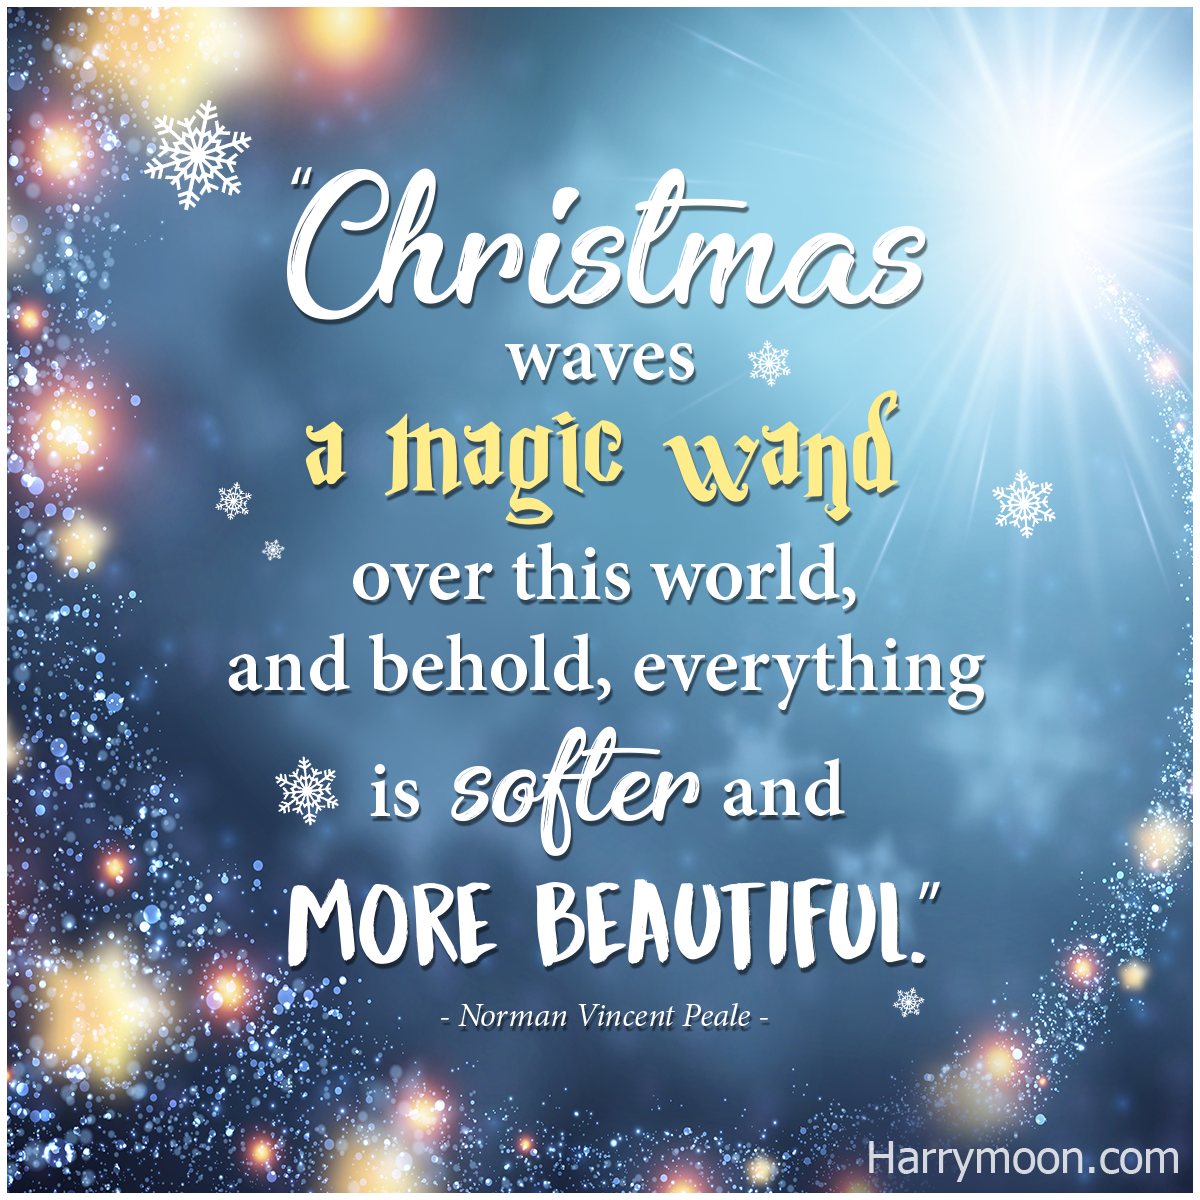 Christmas Waves A Magic Wand Over This World And Behold Everything Is Softer And More Beaut Quotes About New Year Christmas Quotes Inspirational Xmas Quotes